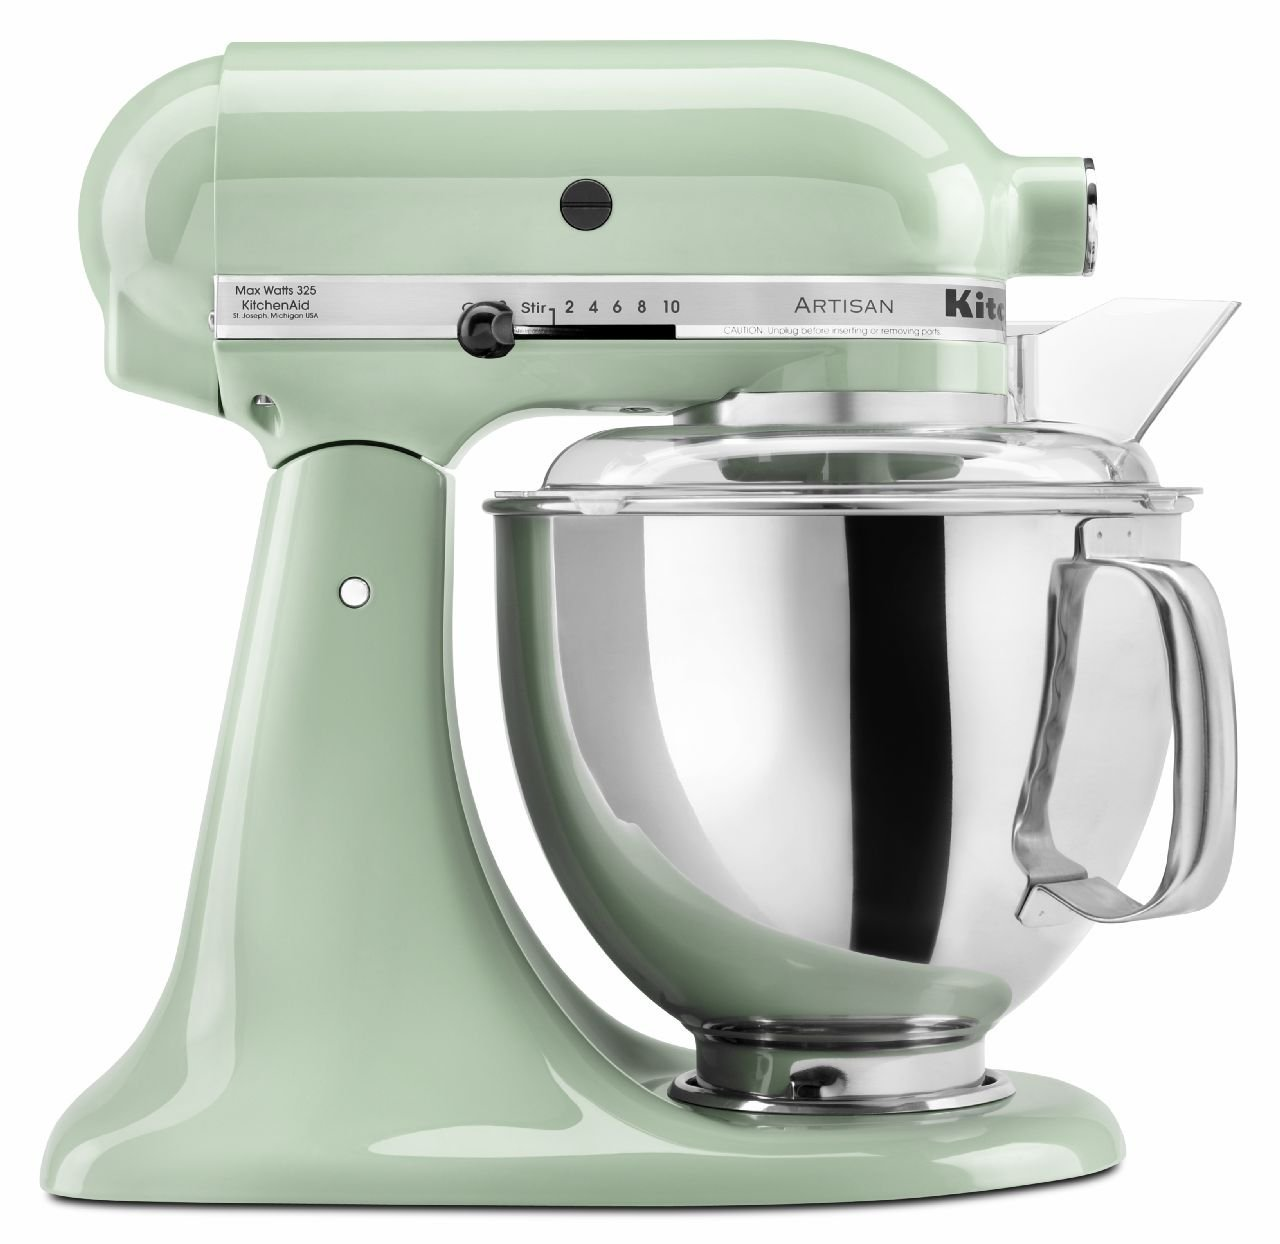 13 Best Accessories for KitchenAid Mixers - The Naughty Mommy